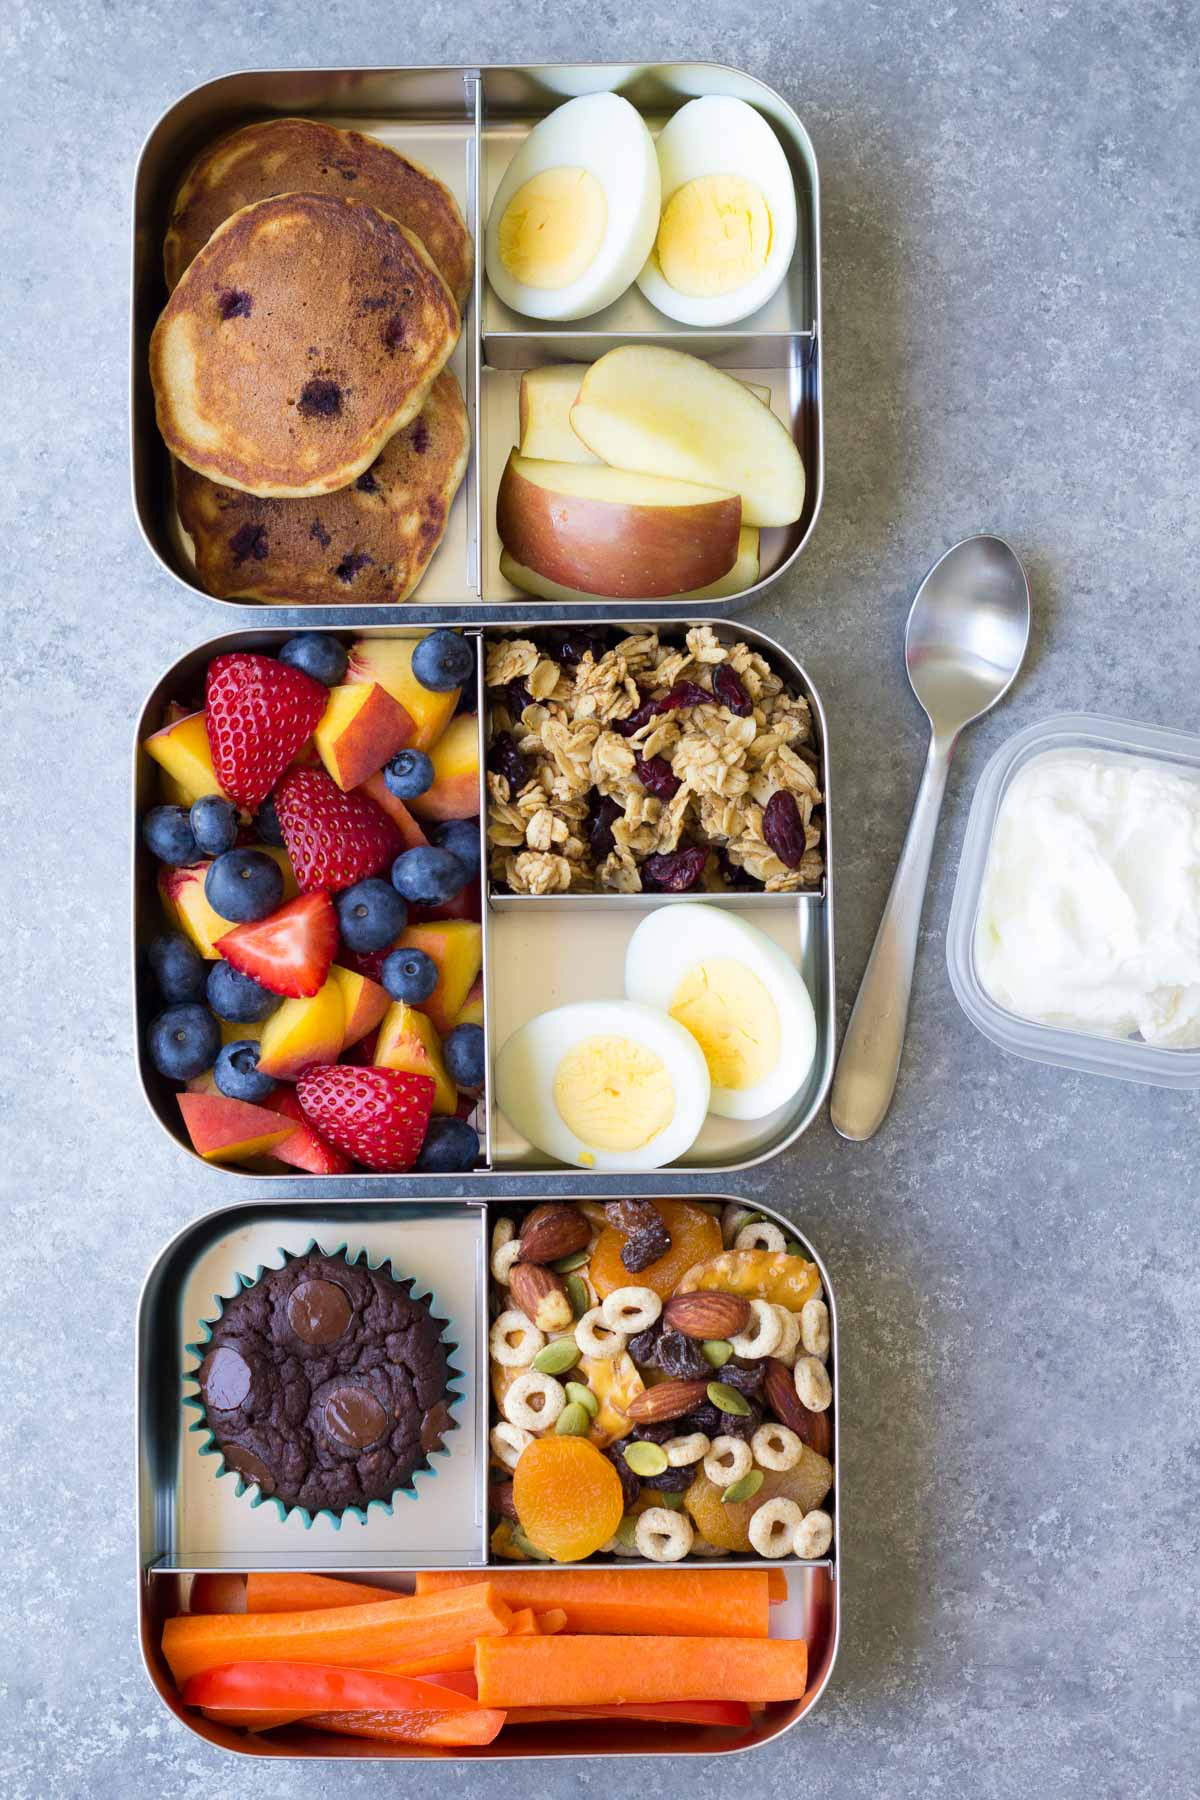 Healthy Snacks For Kids Lunch Boxes  10 More Healthy Lunch Ideas for Kids for the School Lunch